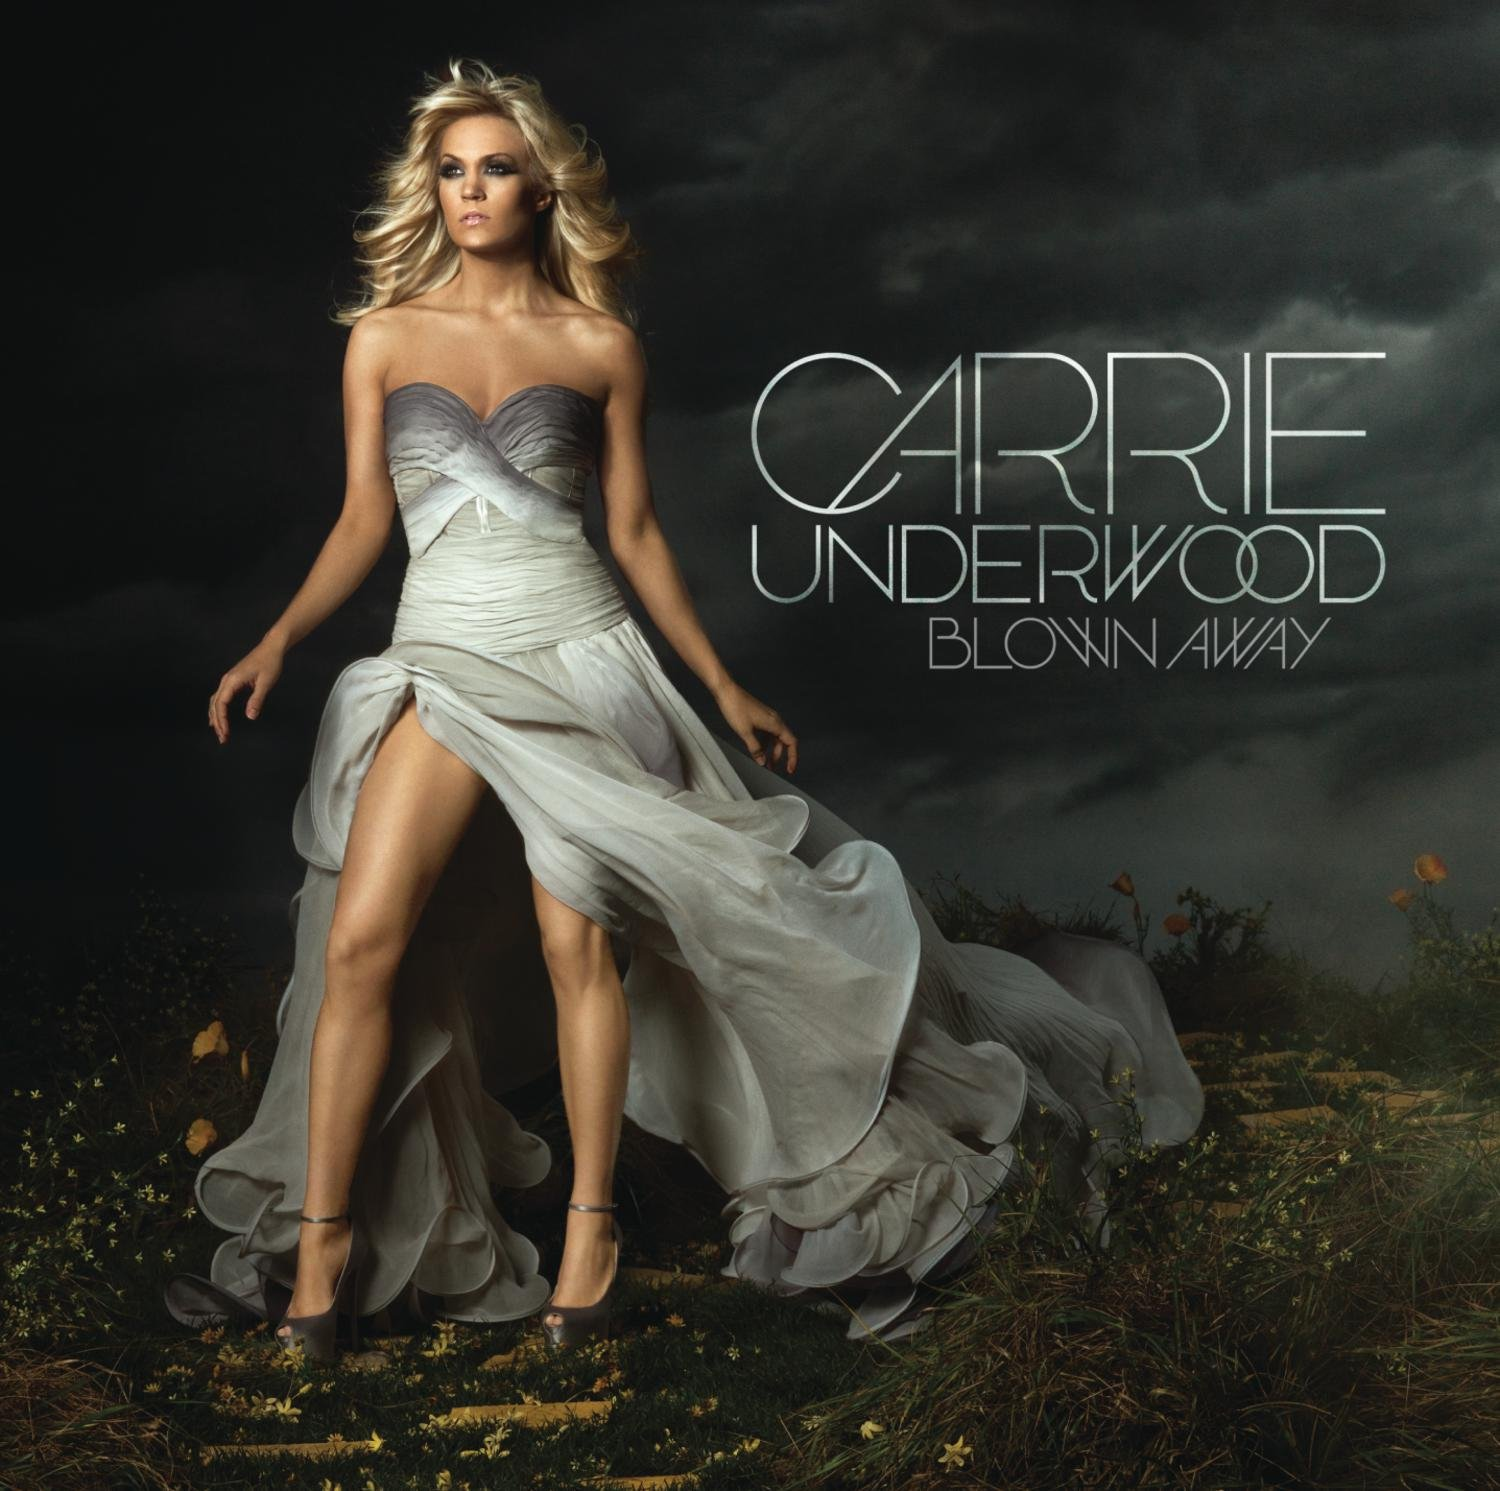 carrie underwood two black cadillacs free download mp3